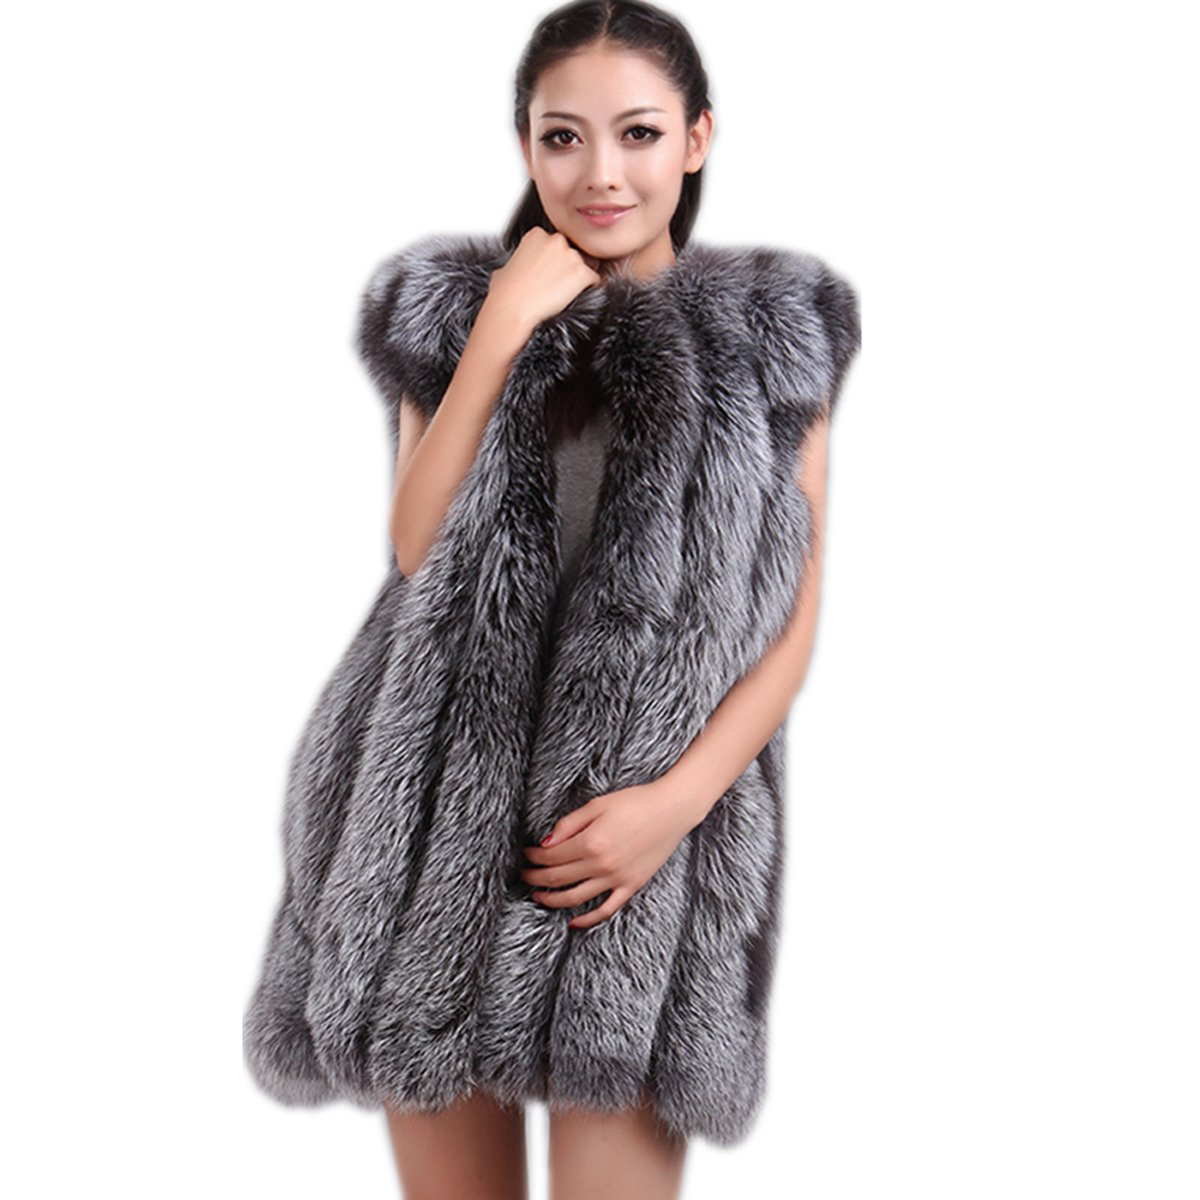 Top Fur Winter Whole Skin Silver Fox Fur Vest Gilet Waistcoat US 12